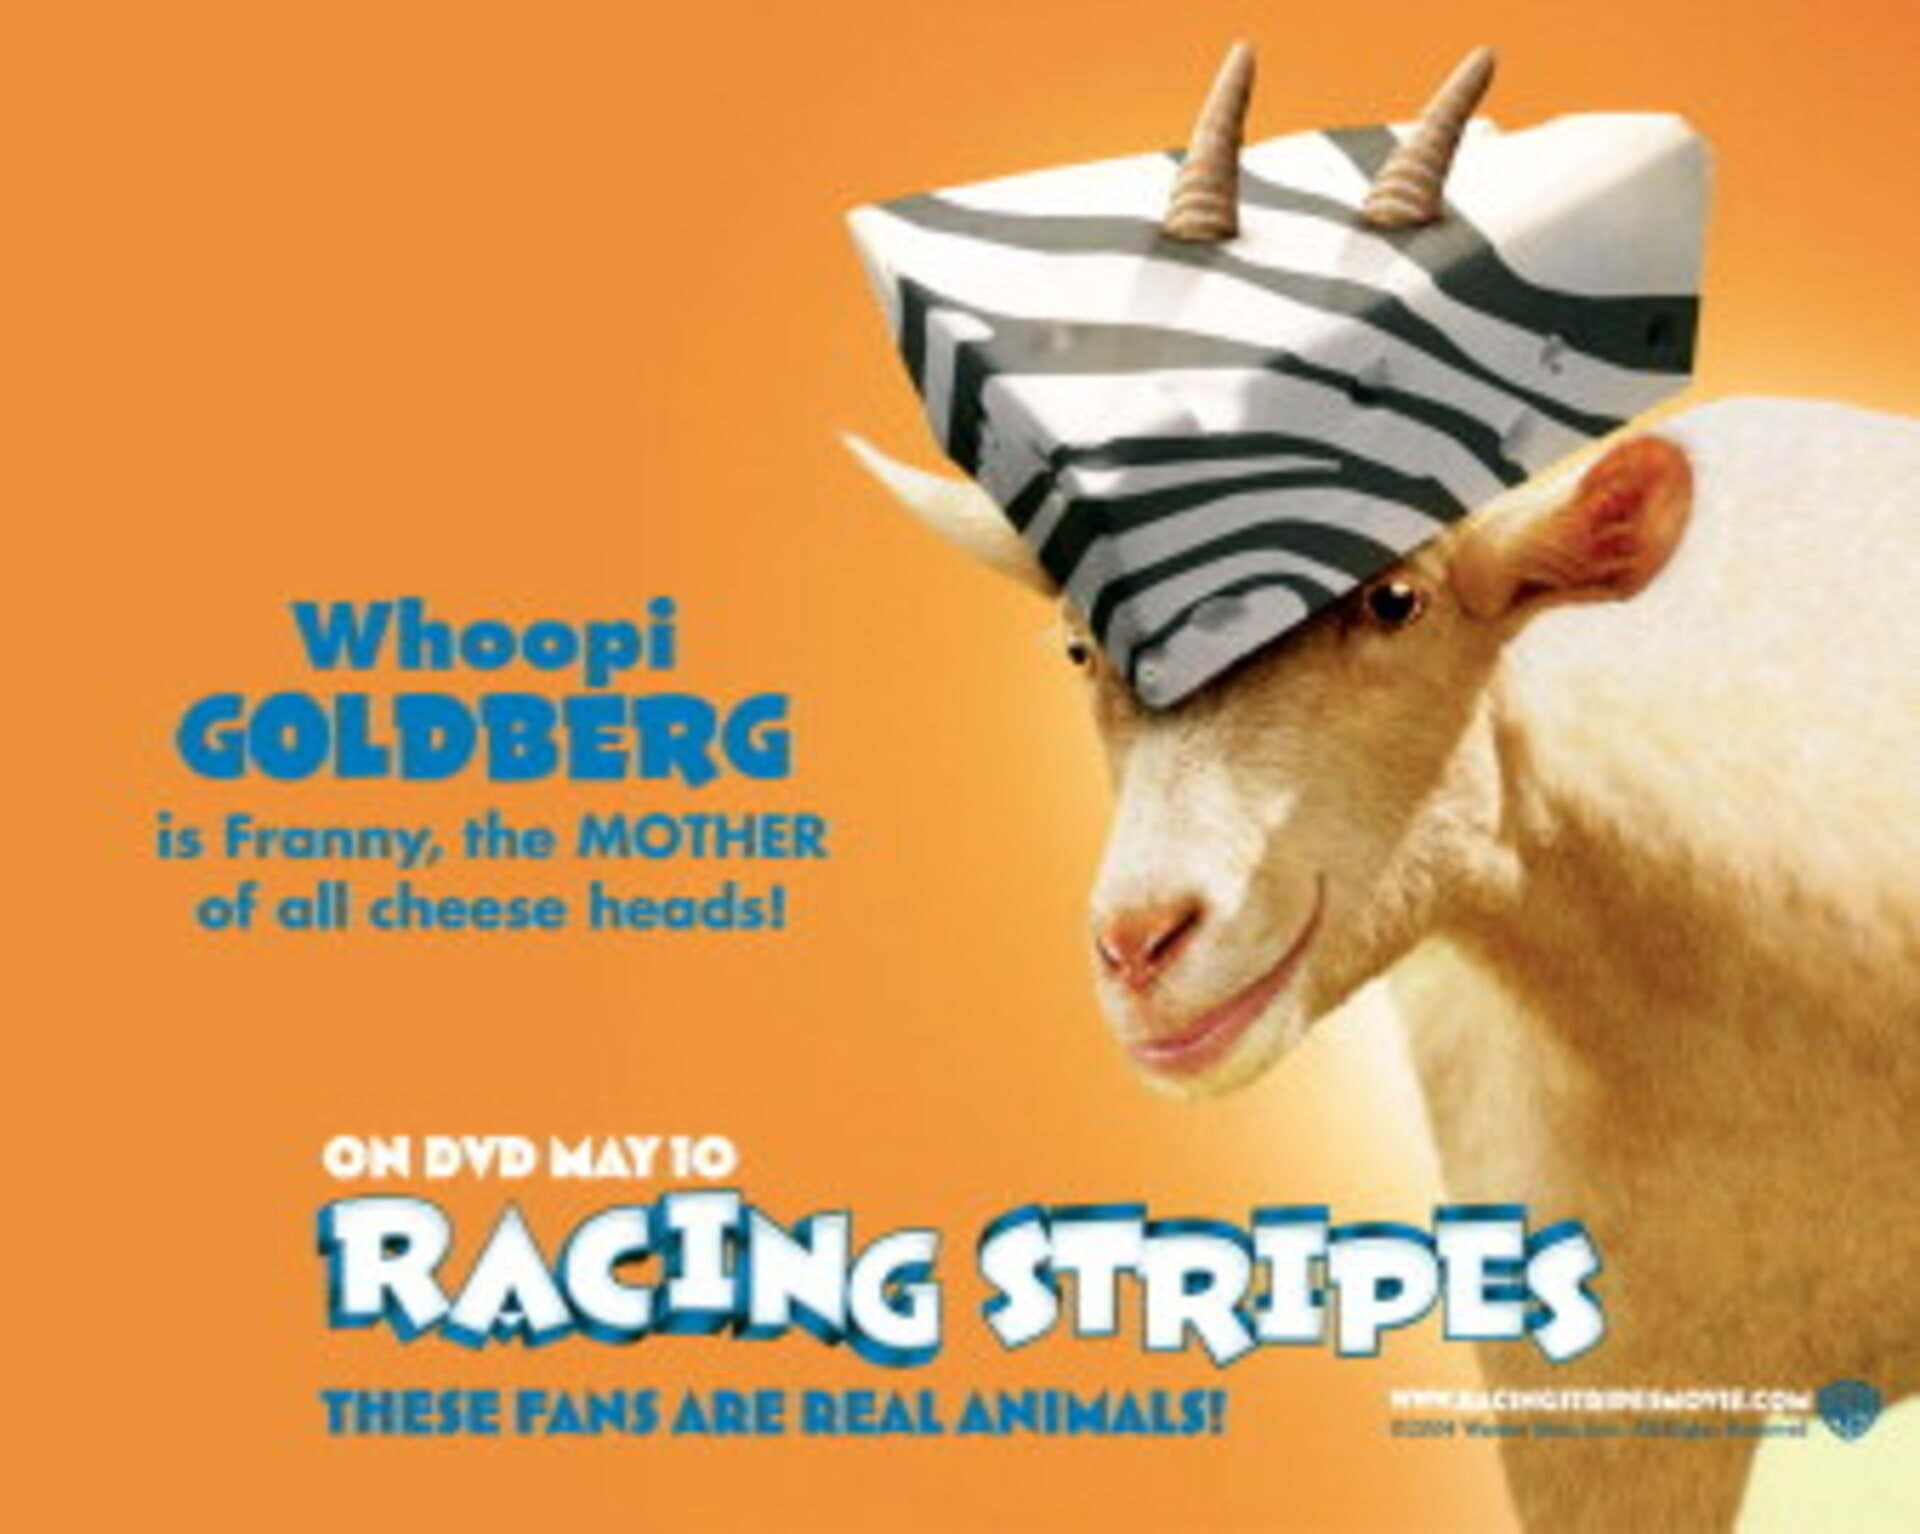 Racing Stripes - Image 41